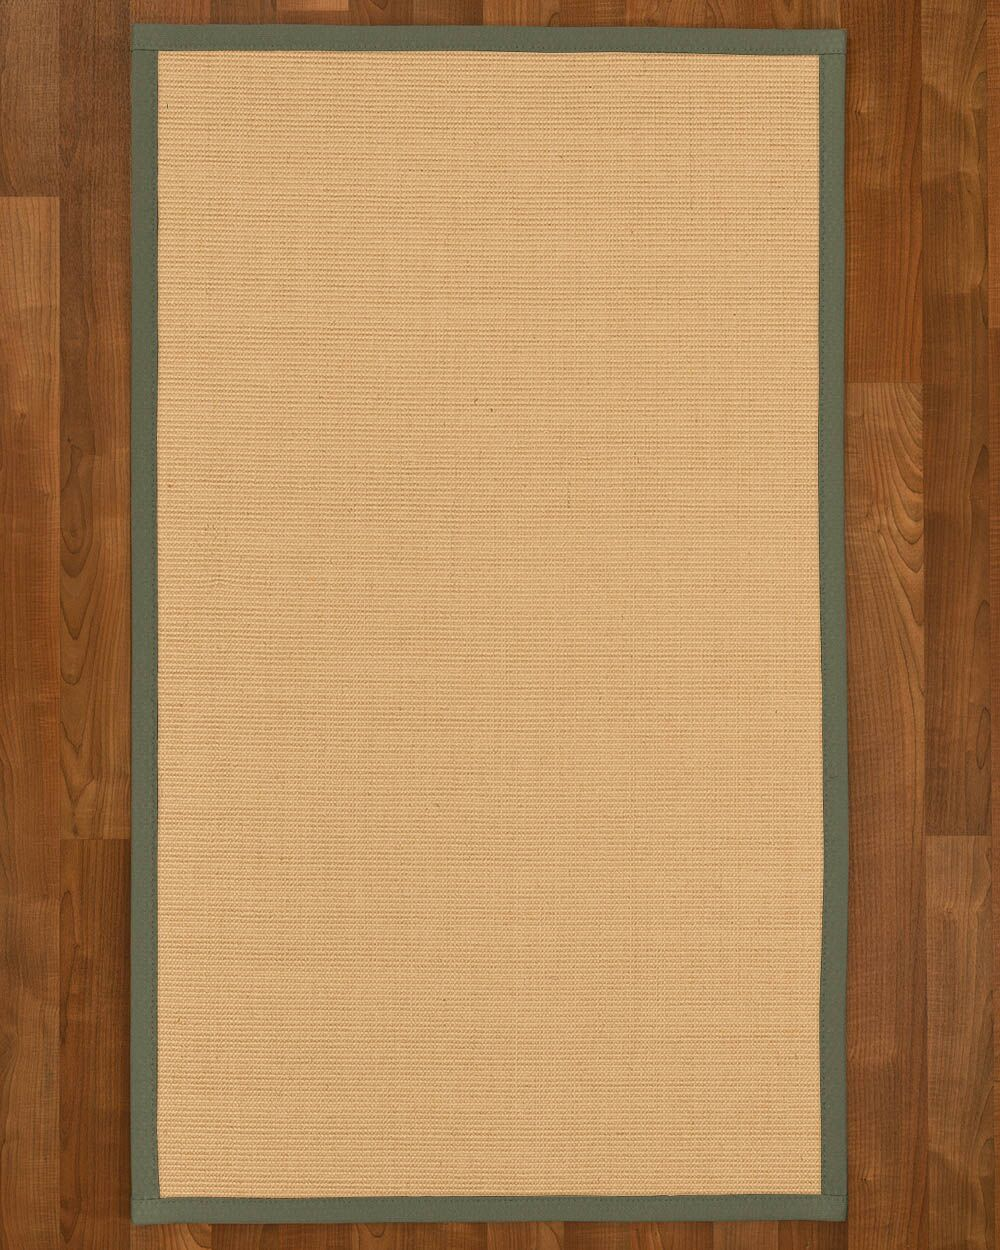 Rupendra Hand Woven Beige Area Rug Rug Size: Rectangle 2' X 3'